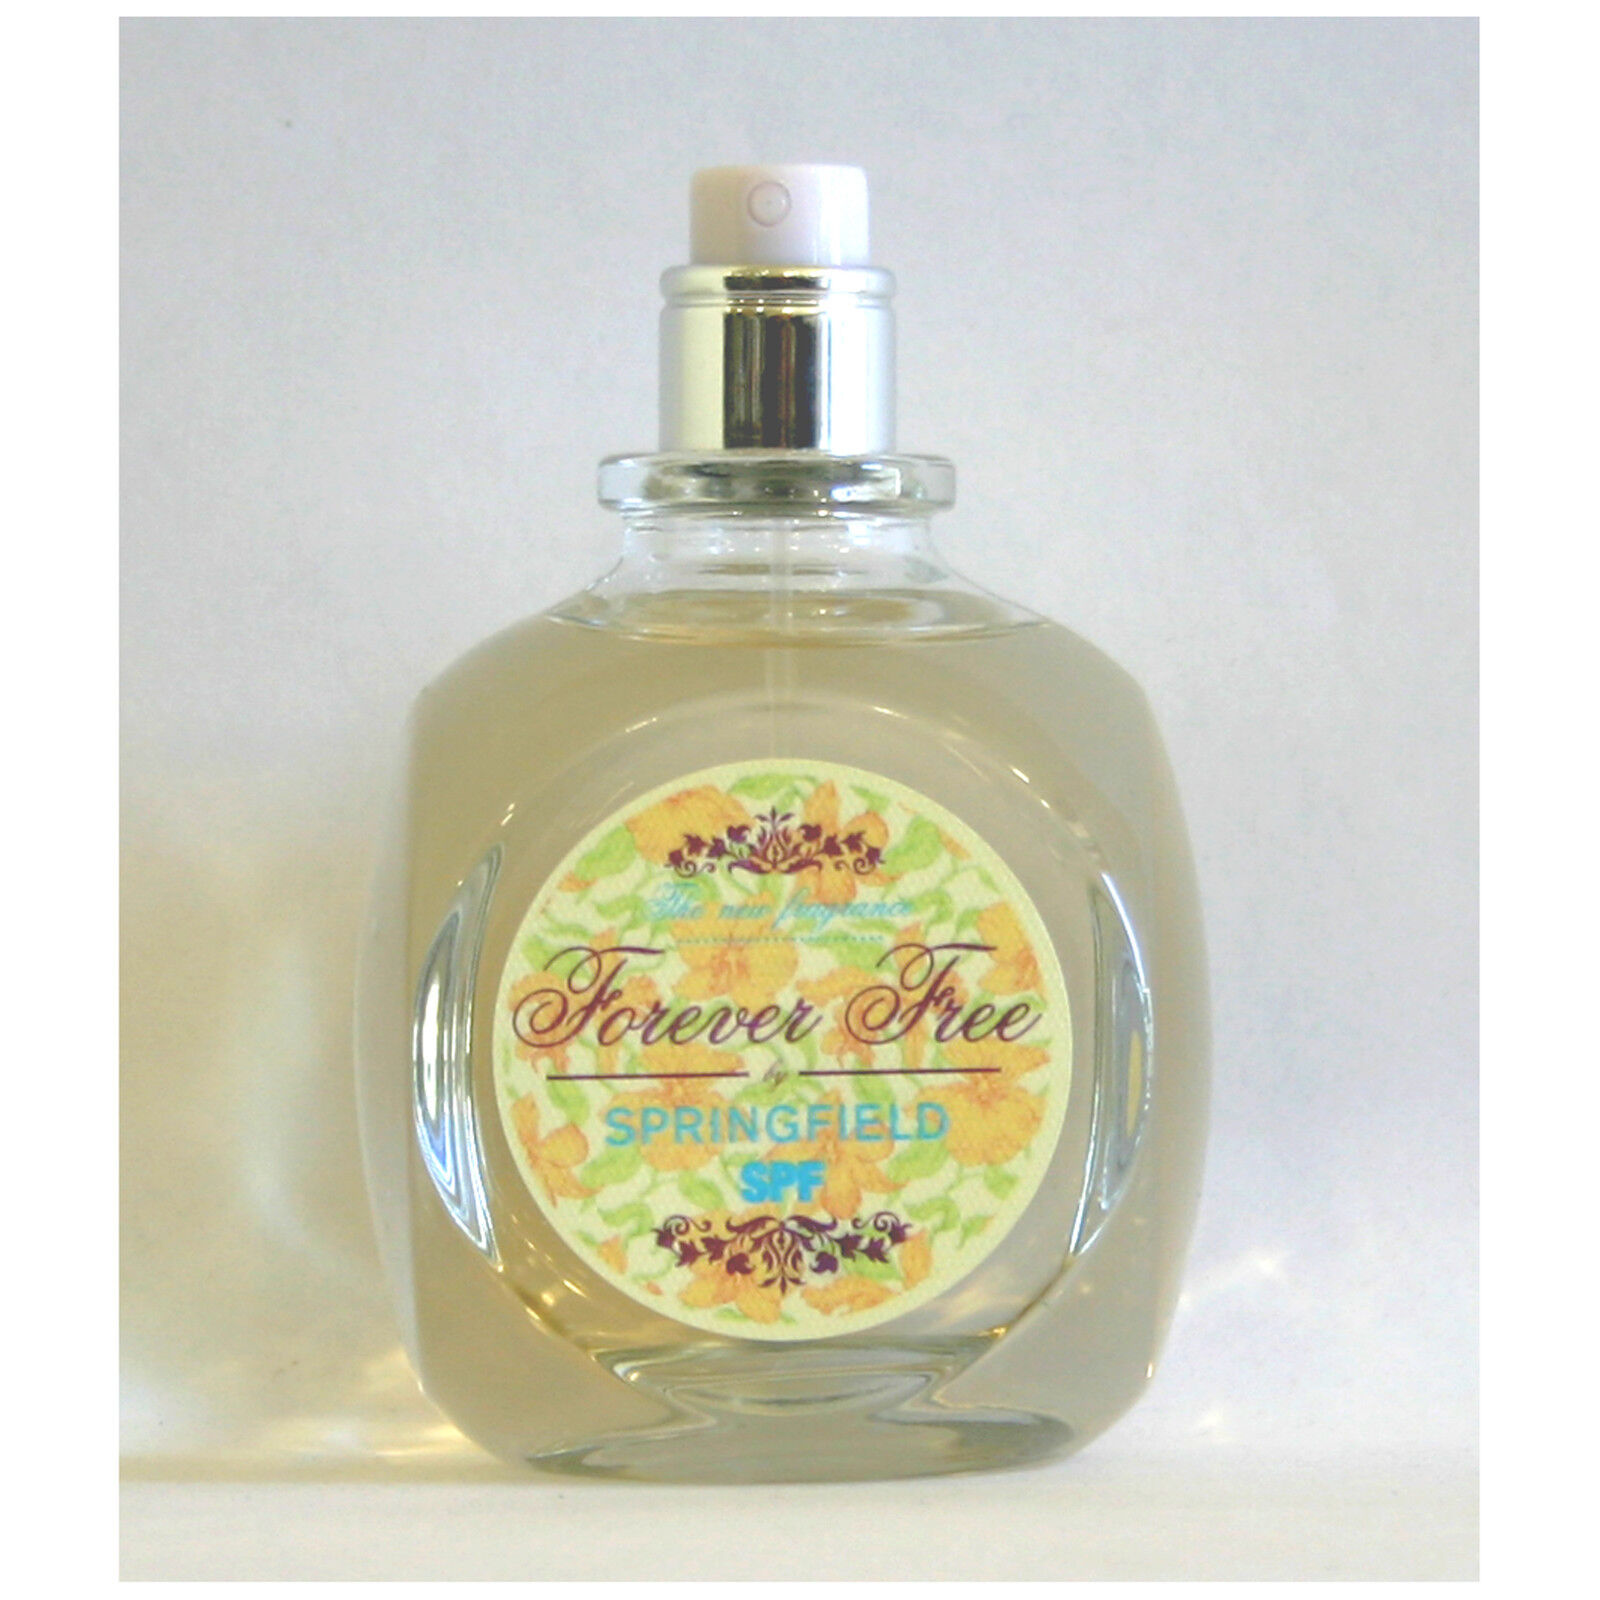 Detalles de SPRINGFIELD FOREVER FREE HER Colonia Perfume 100 mL [NO BOX] Mujer Woman